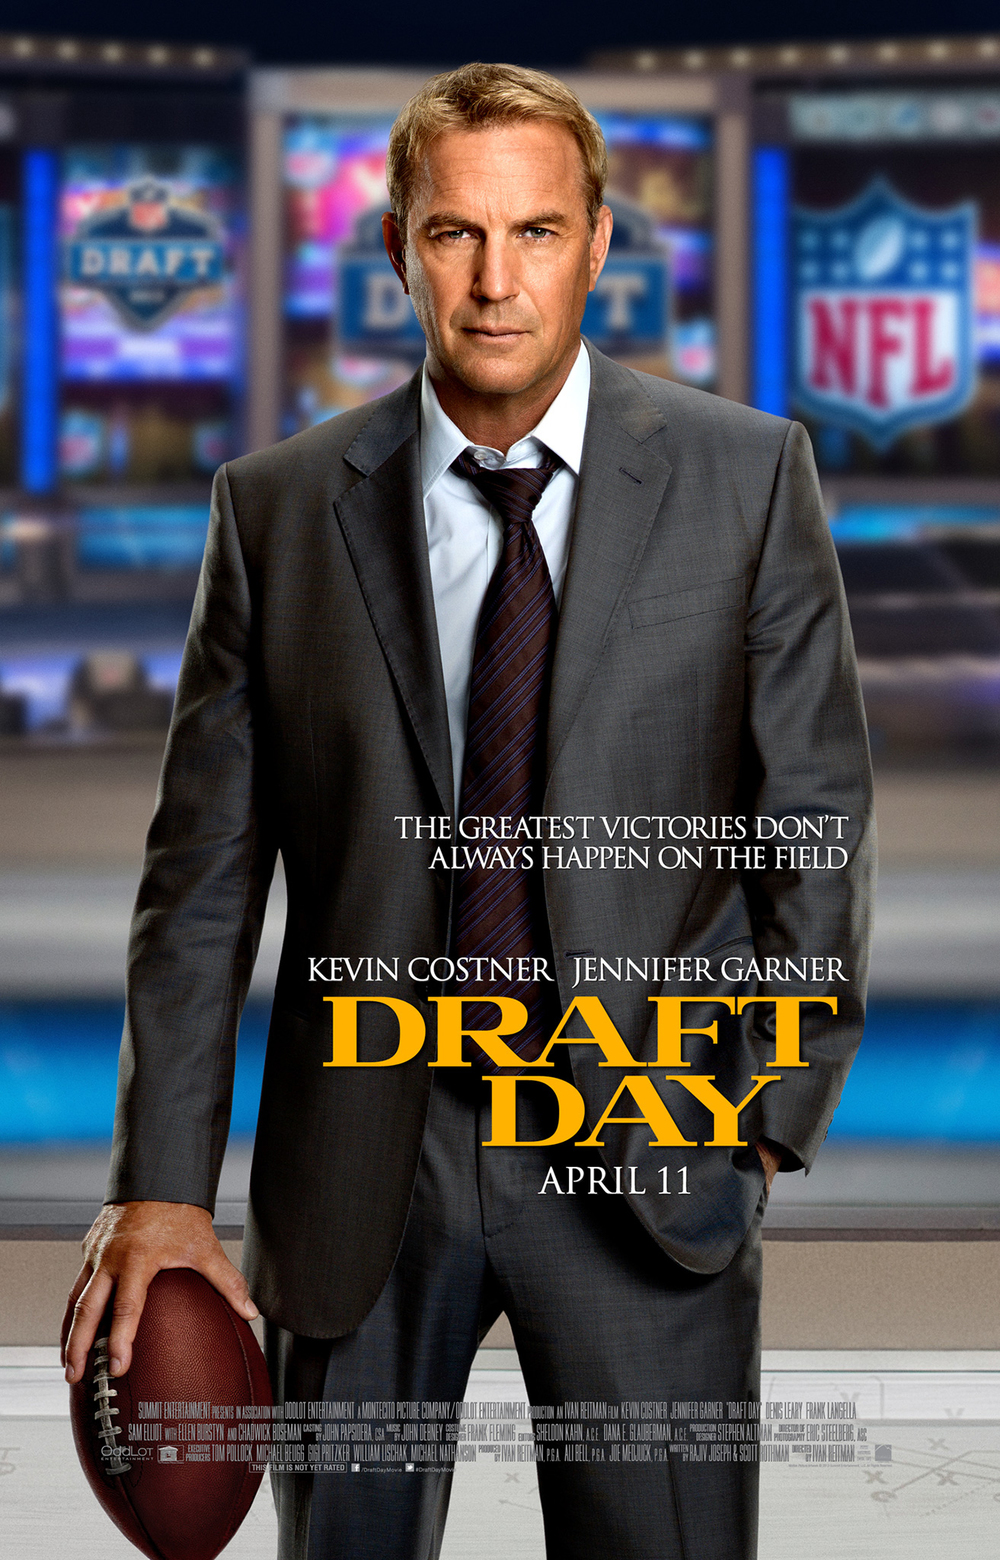 trailer-for-ivan-reitmans-sports-film-draft-day.jpg